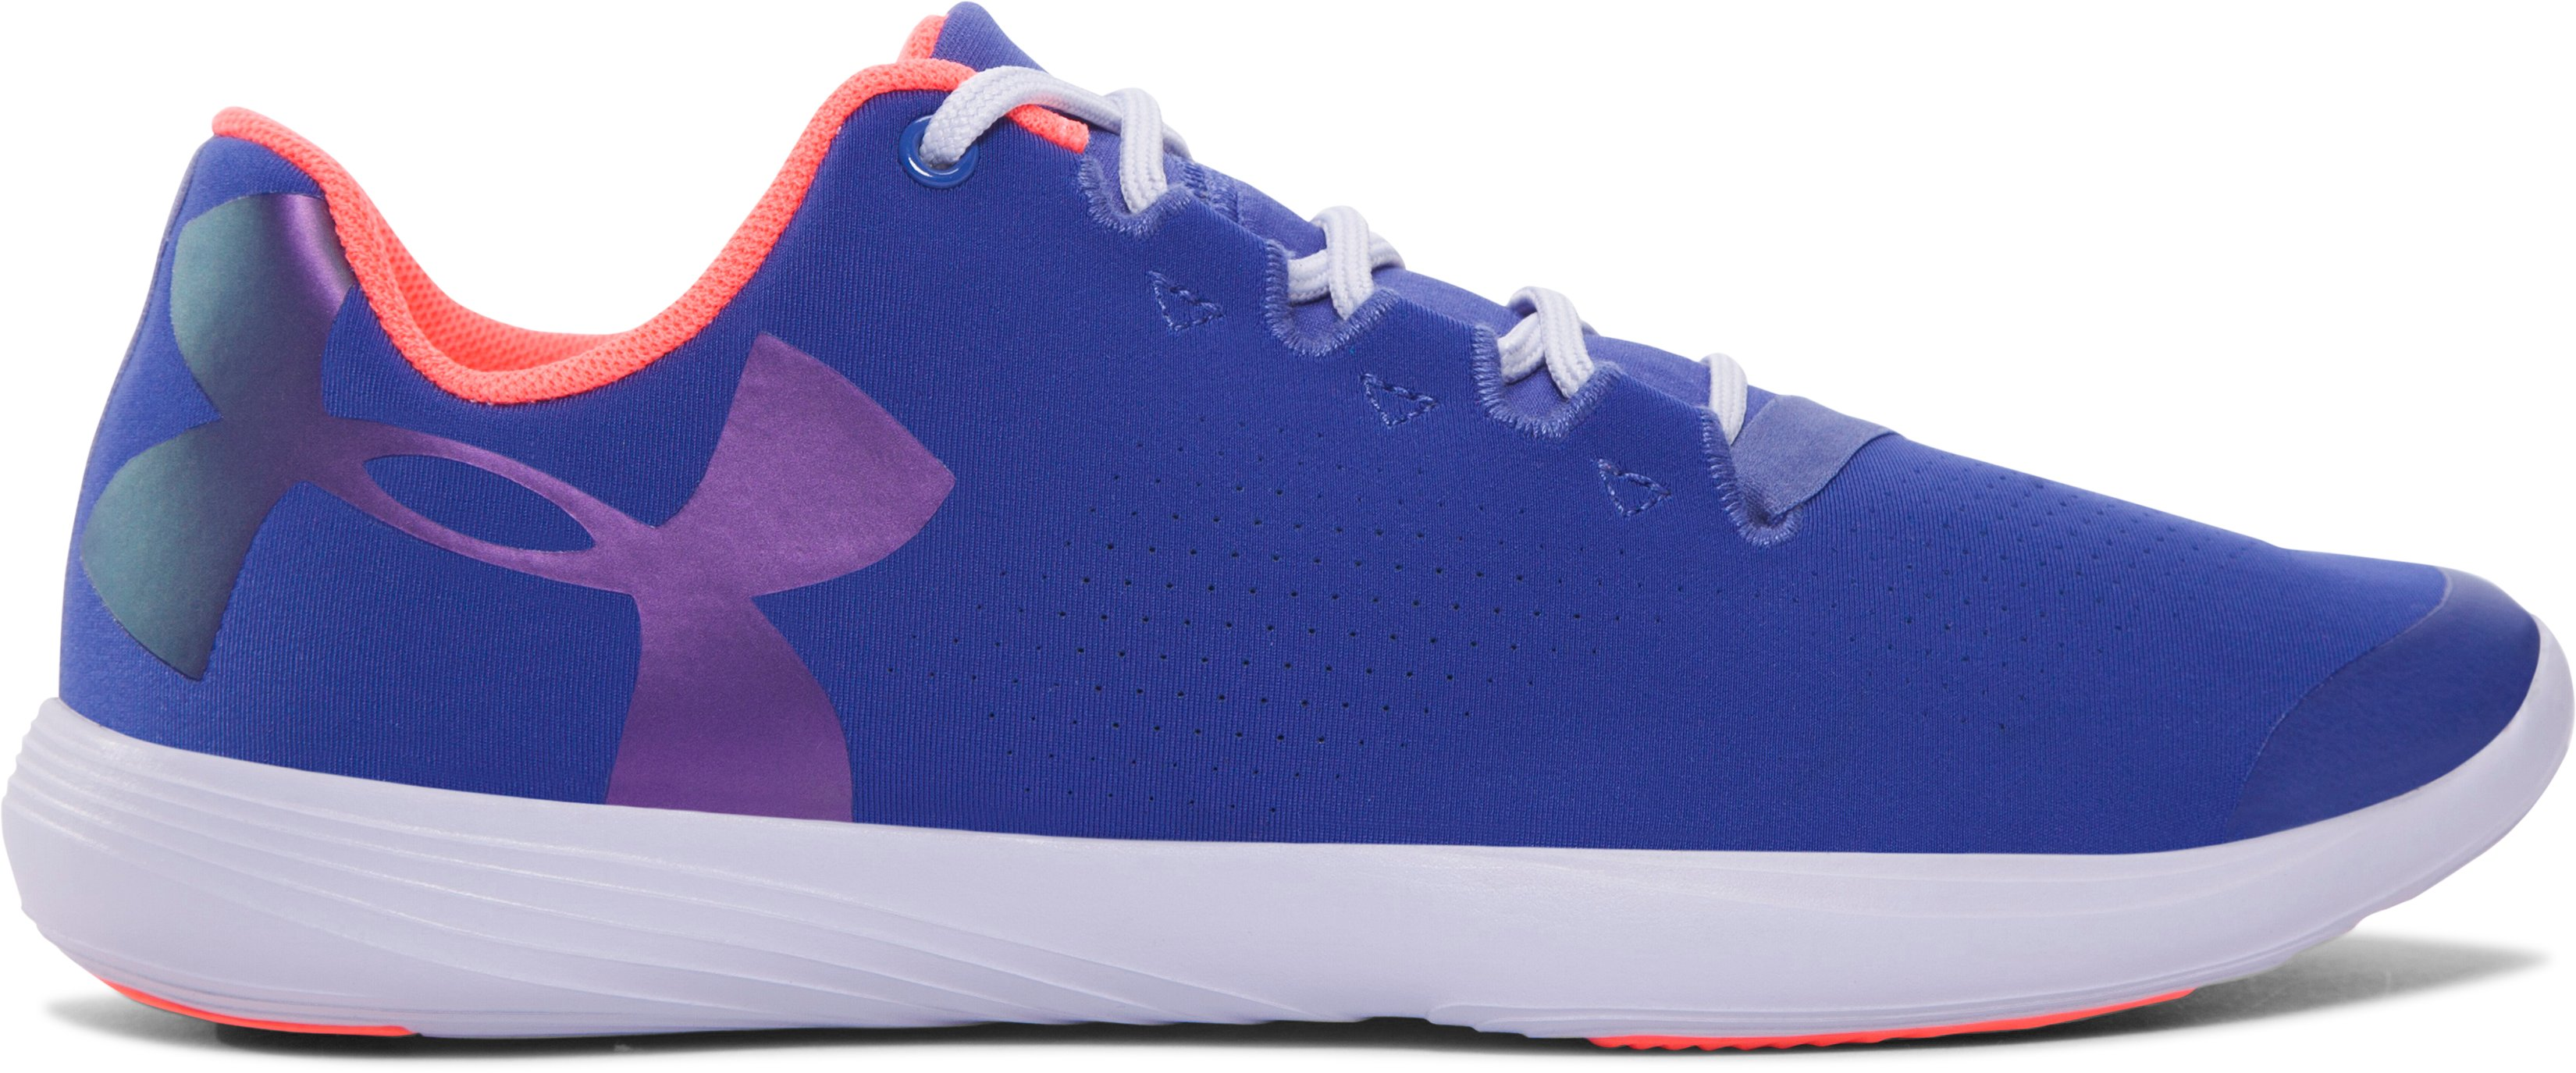 Girls' Grade School UA Street Precision Low IR Training Shoes, DEEP PERIWINKLE, undefined